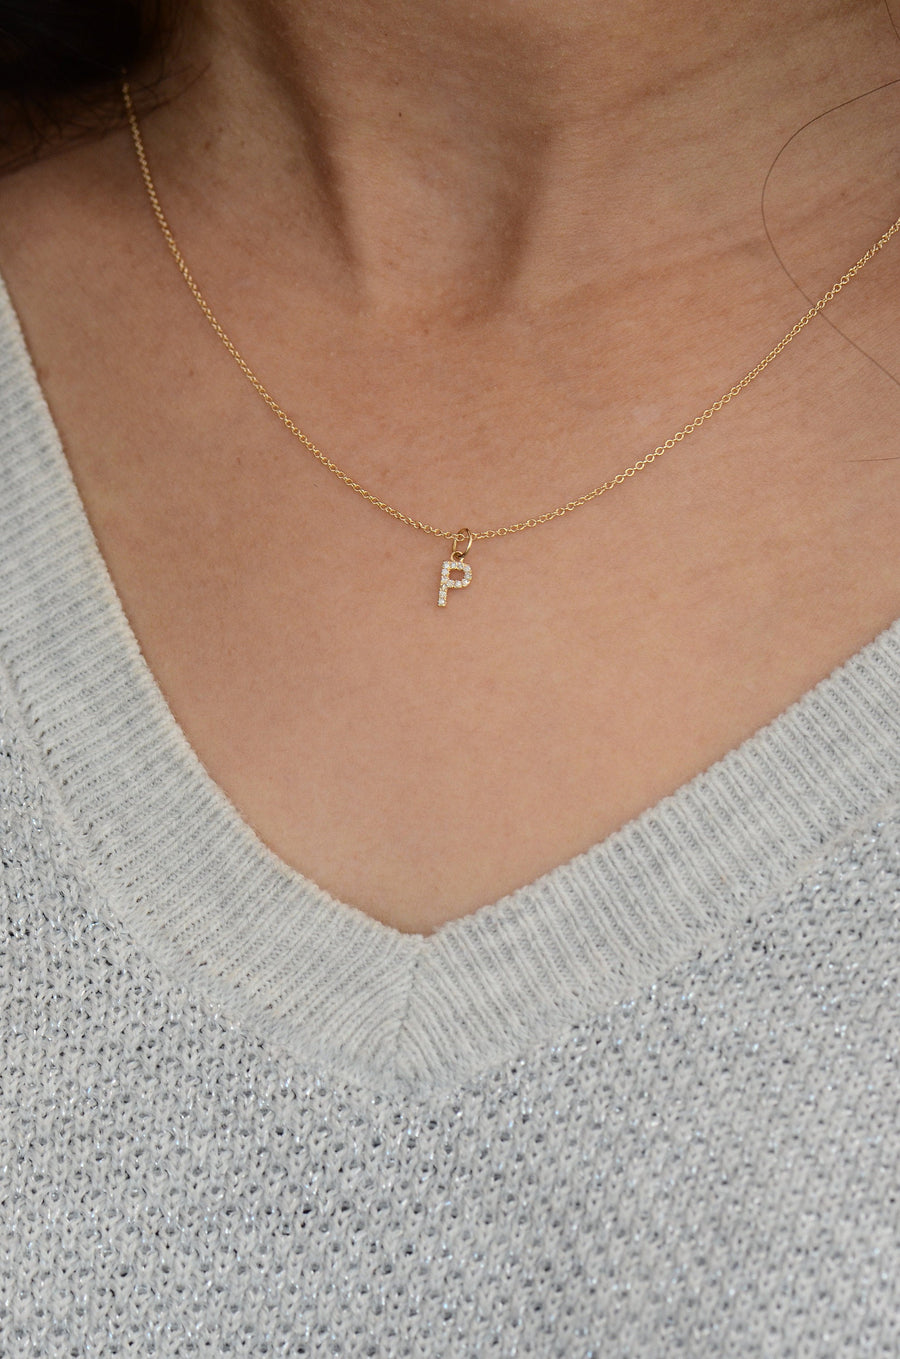 Alphabet necklace, Custom bridesmaid necklace